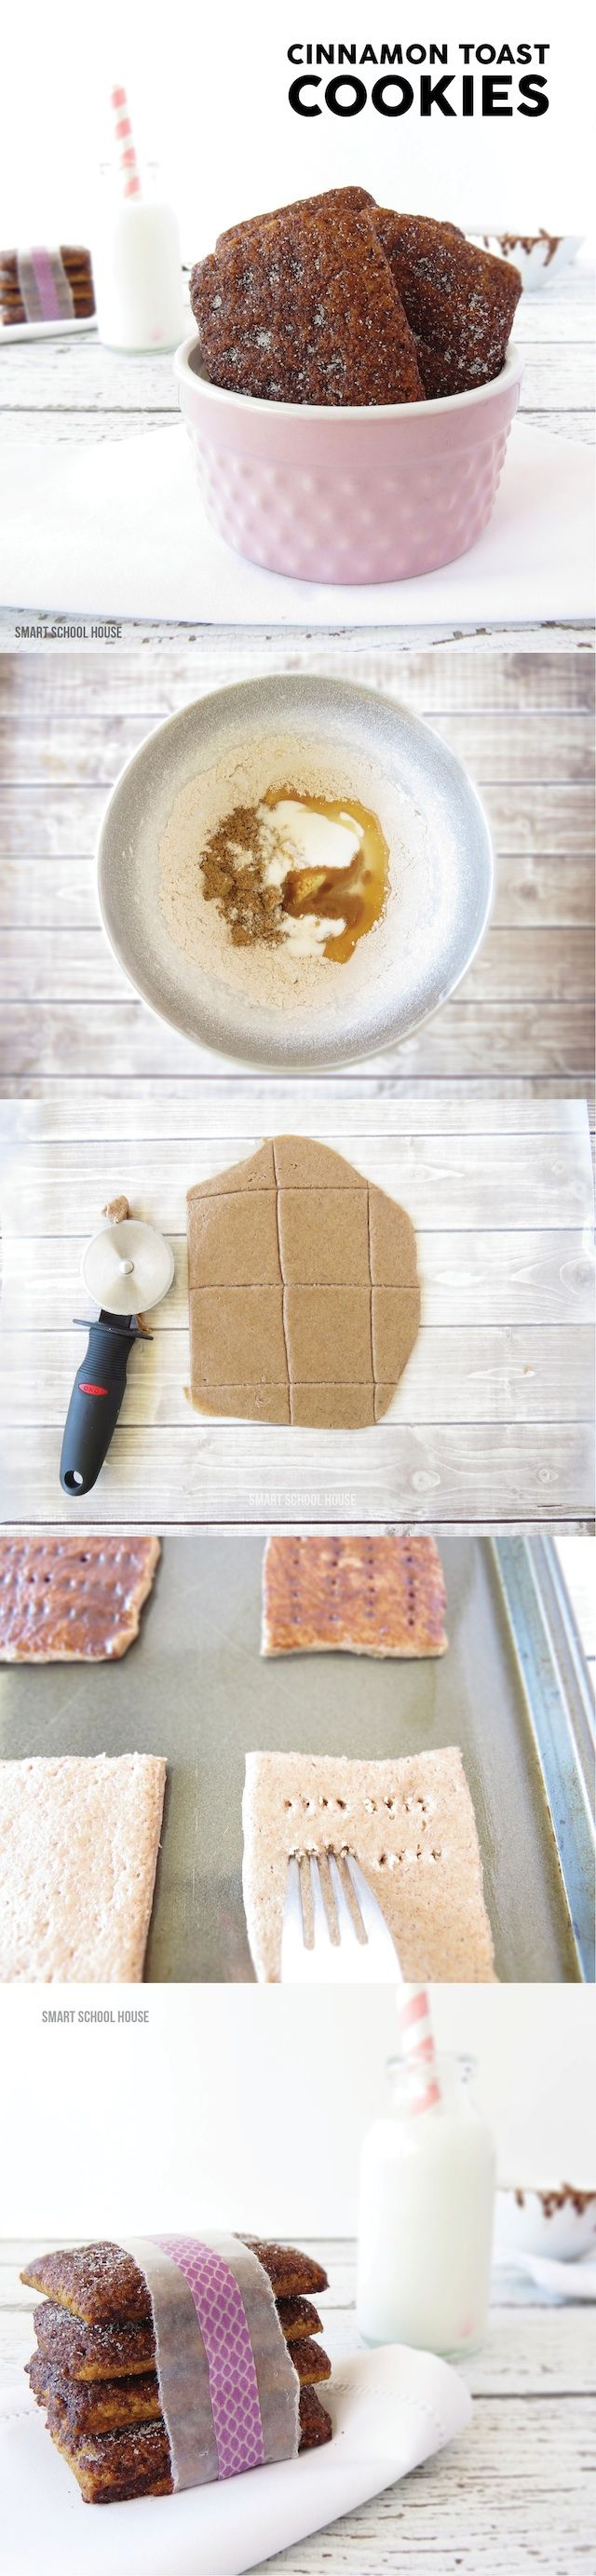 Easy recipe for Cinnamon Toast Cookies